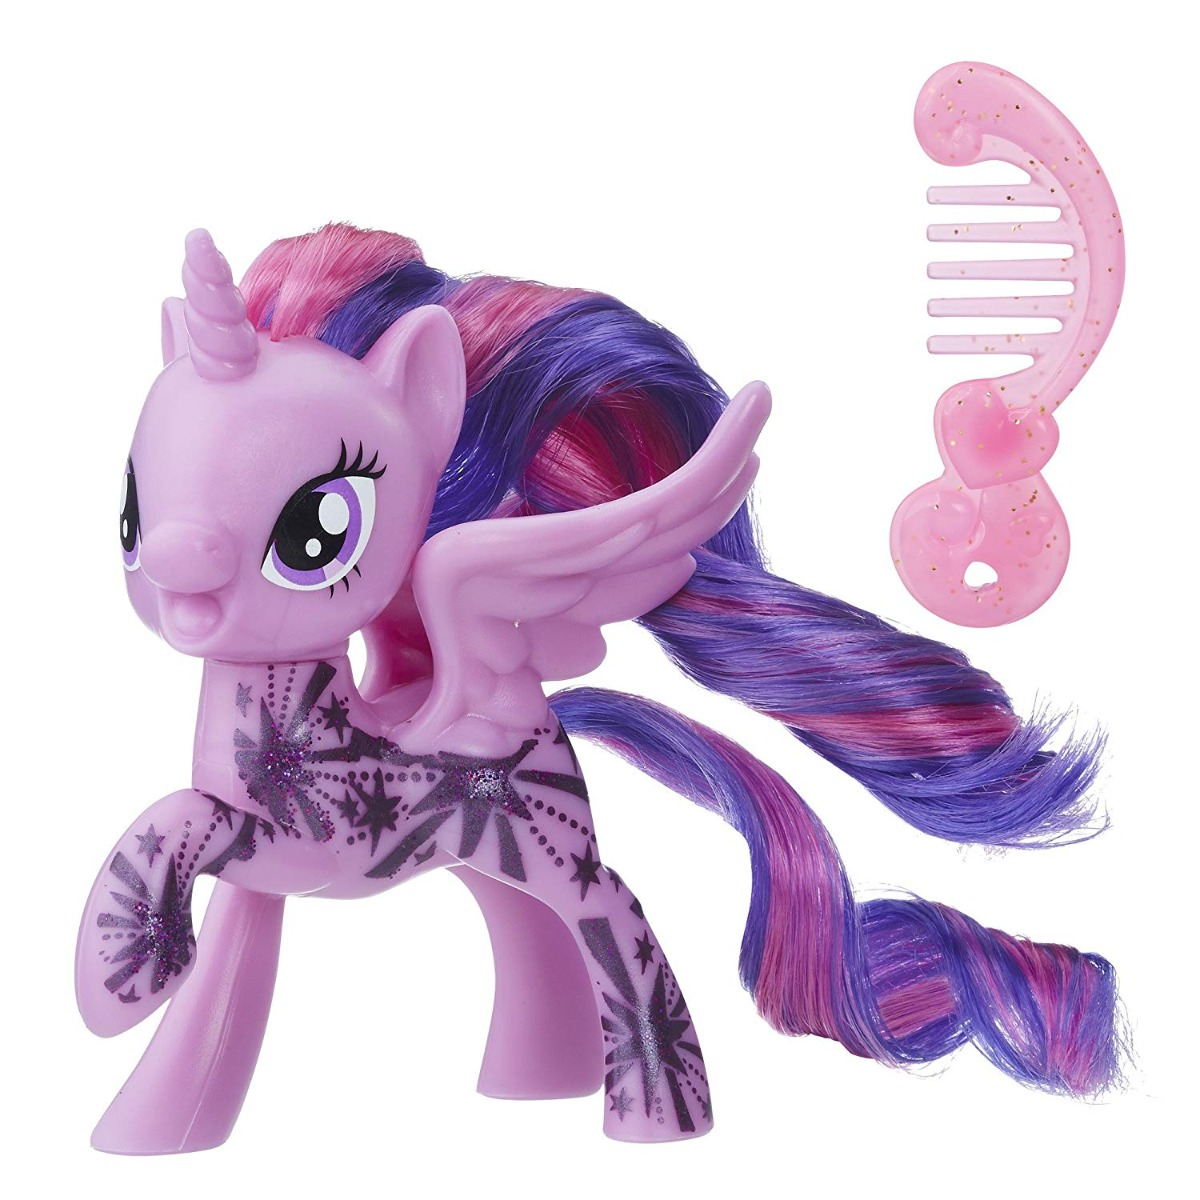 Figurina My Little Pony, Twilight Sparkle, E2559